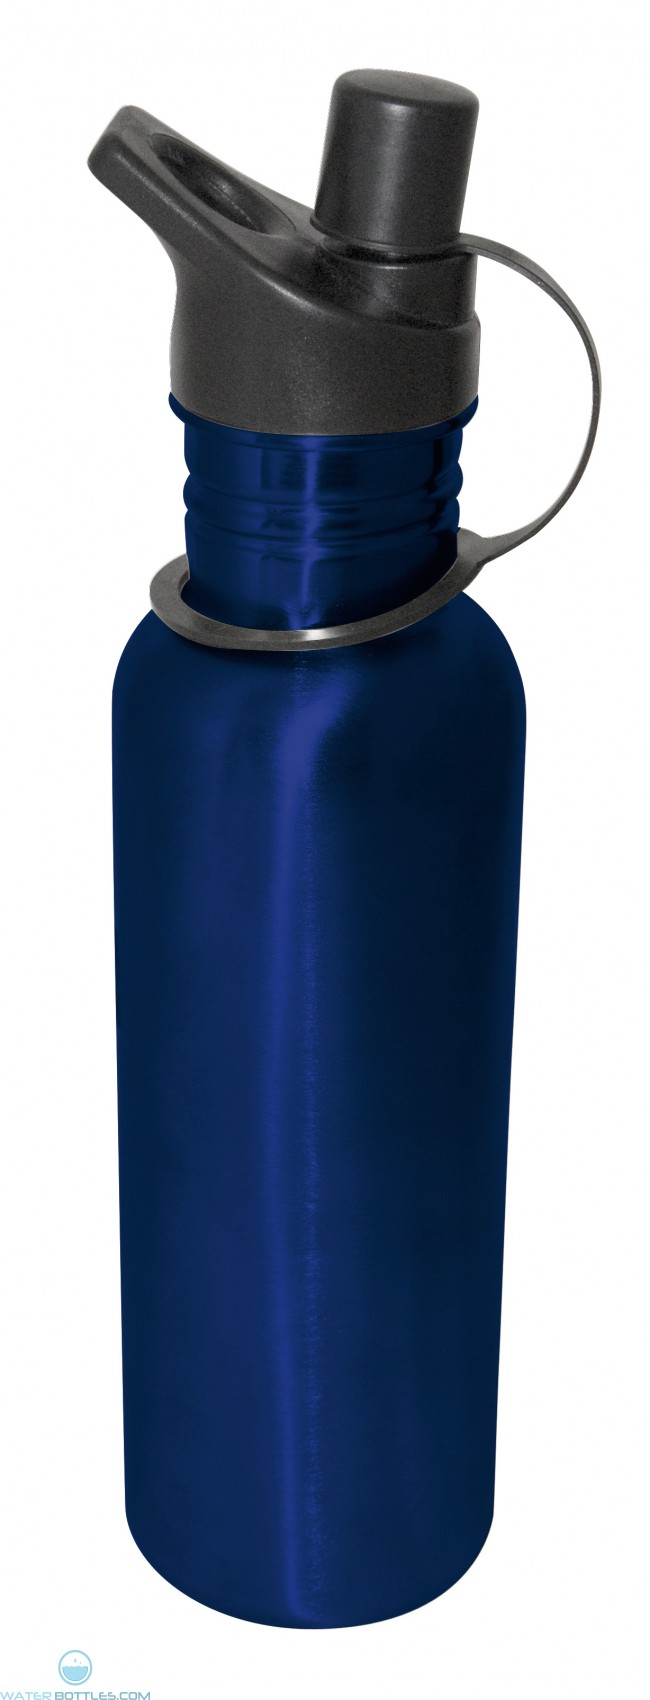 Order Cycle Water Bottles Online at Chain Reaction Cycles. Free Worldwide Shipping Available.